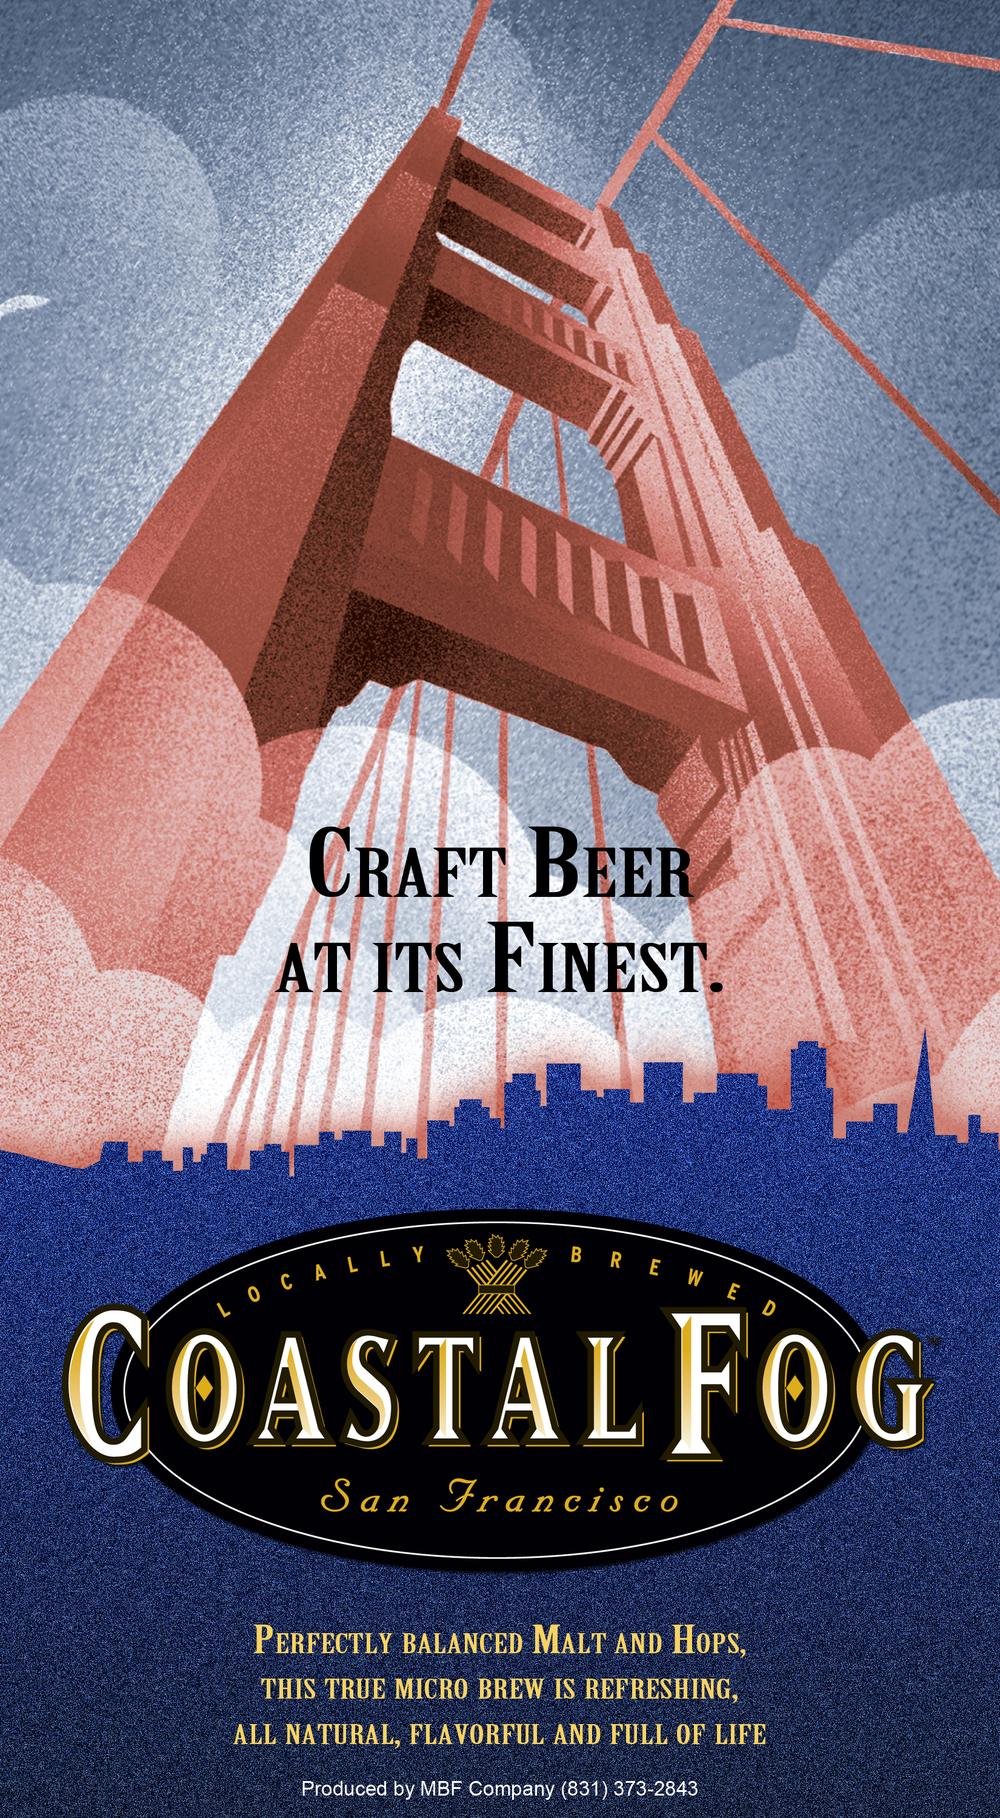 Coastal Fog Promotional Card.jpg